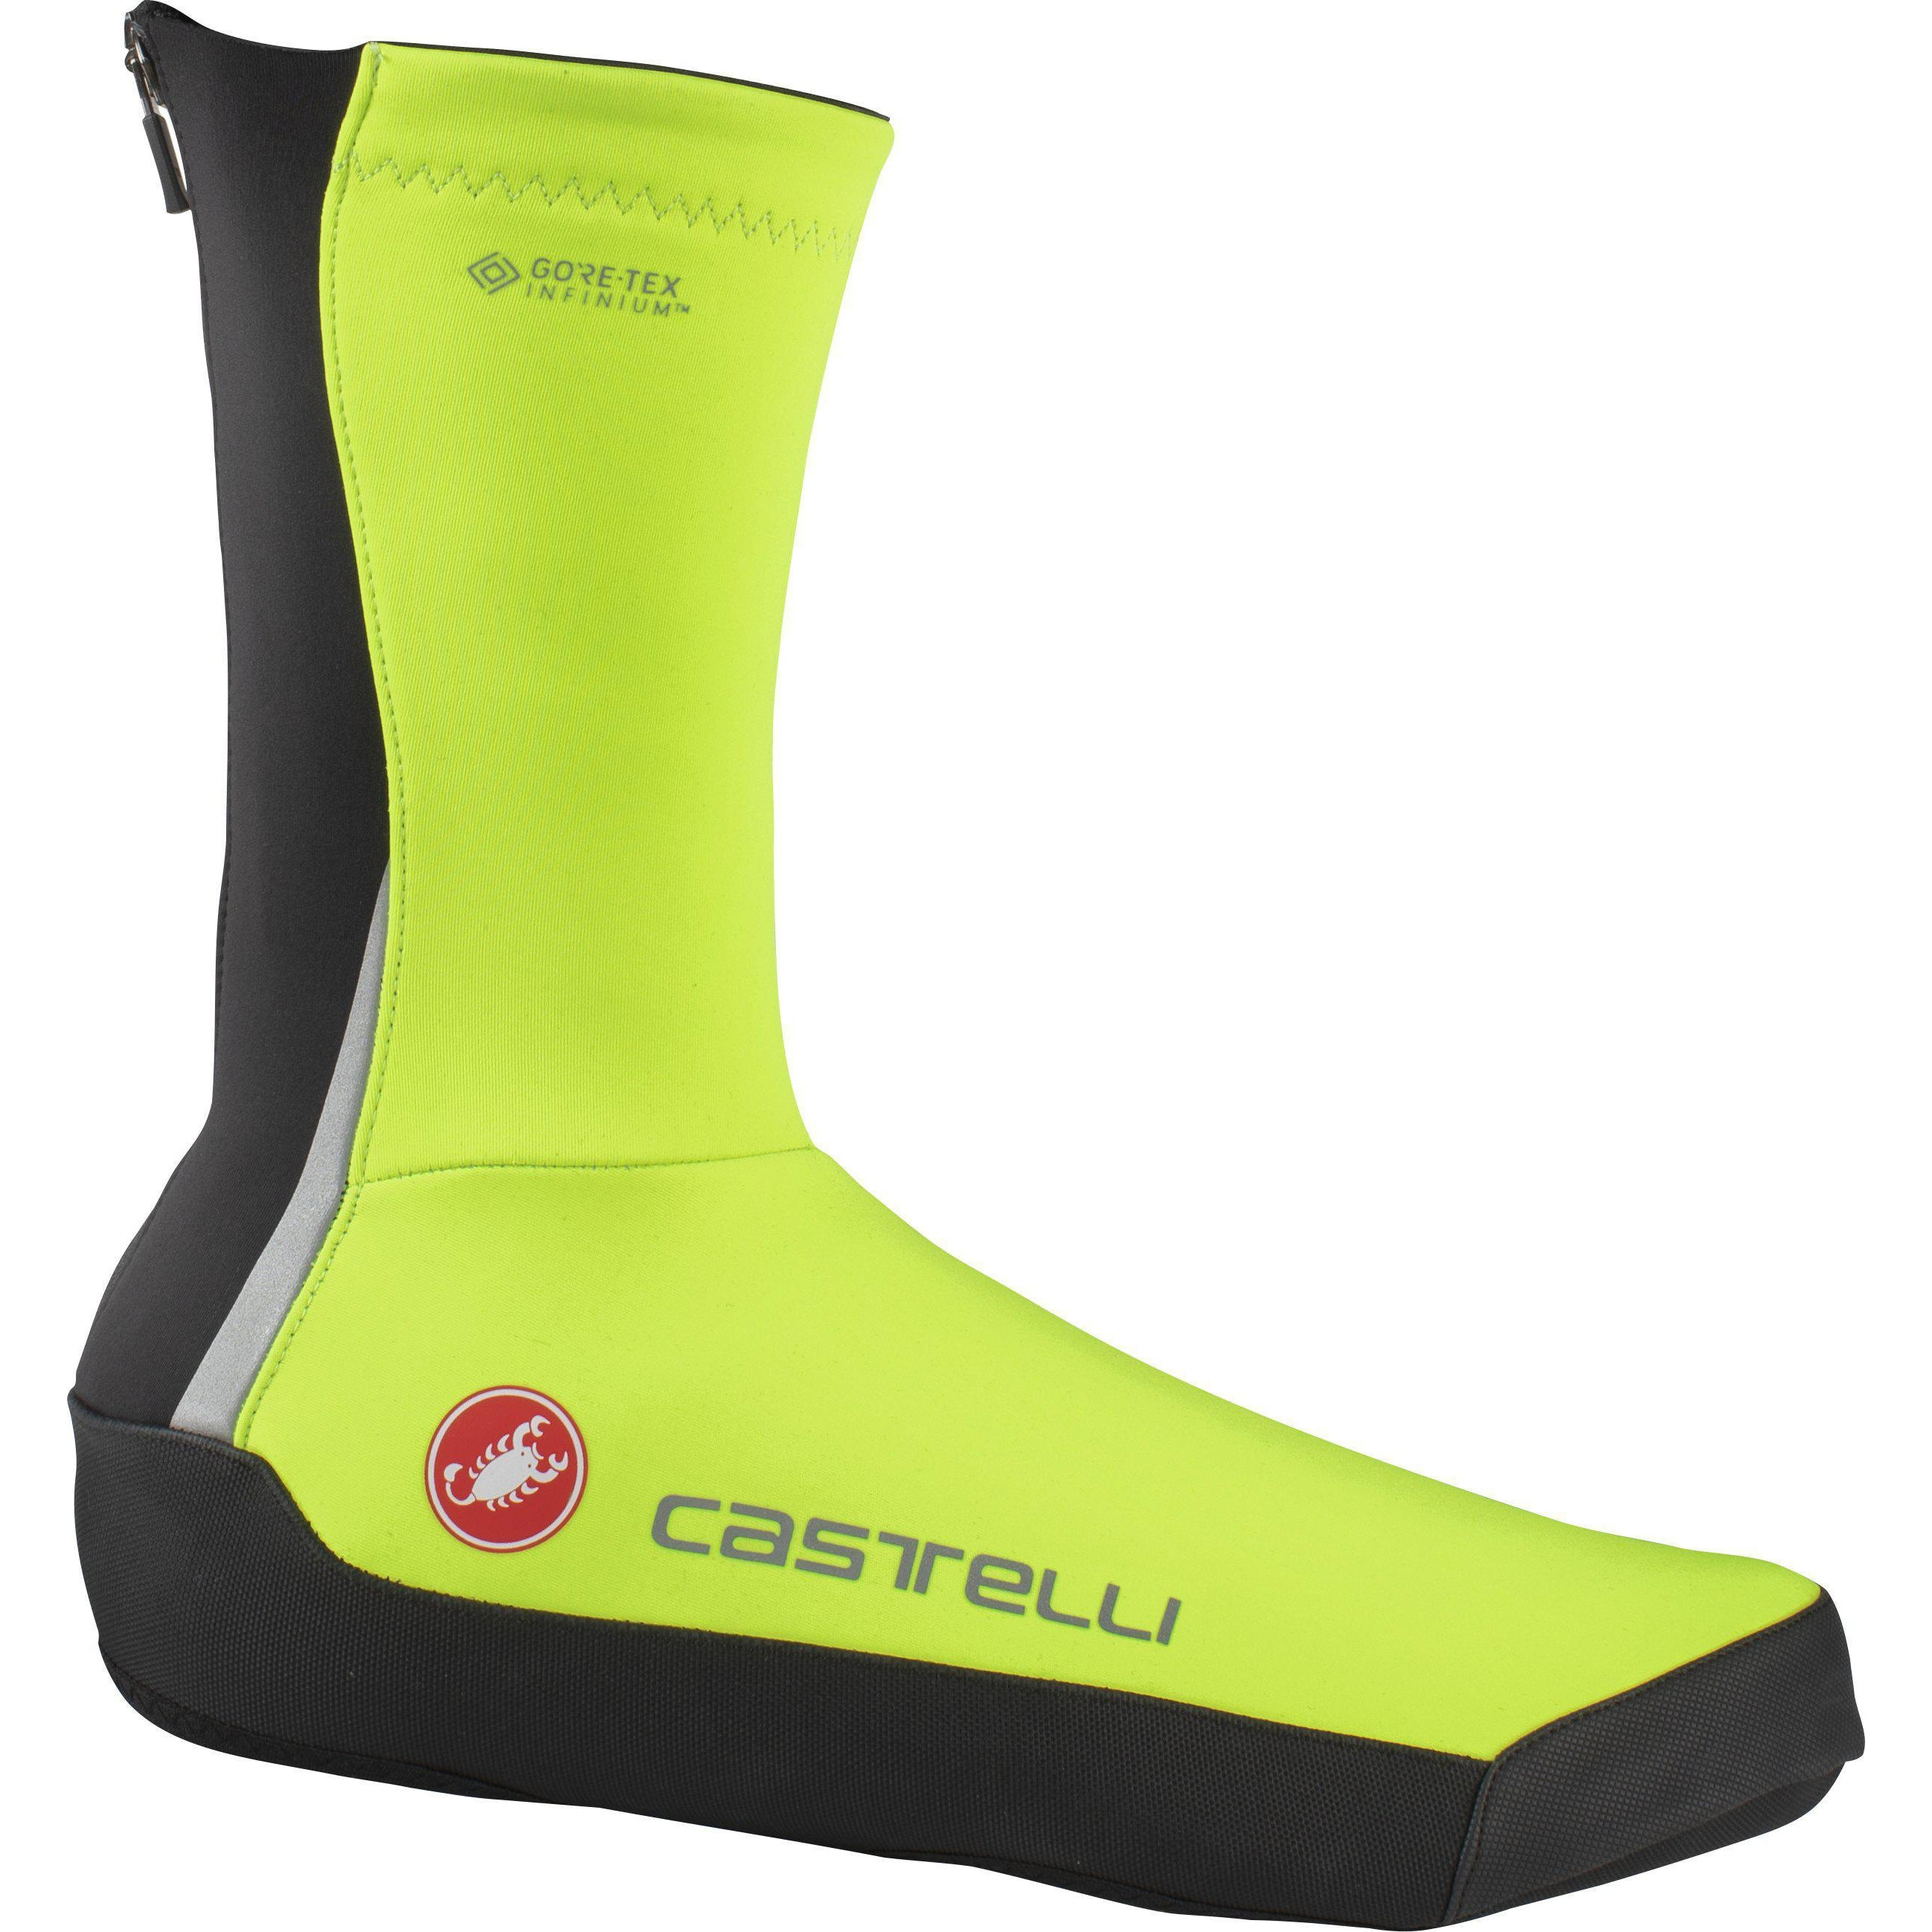 Castelli-Castelli Intenso UL Shoe Covers-Yellow Fluo-S-CS205380322-saddleback-elite-performance-cycling